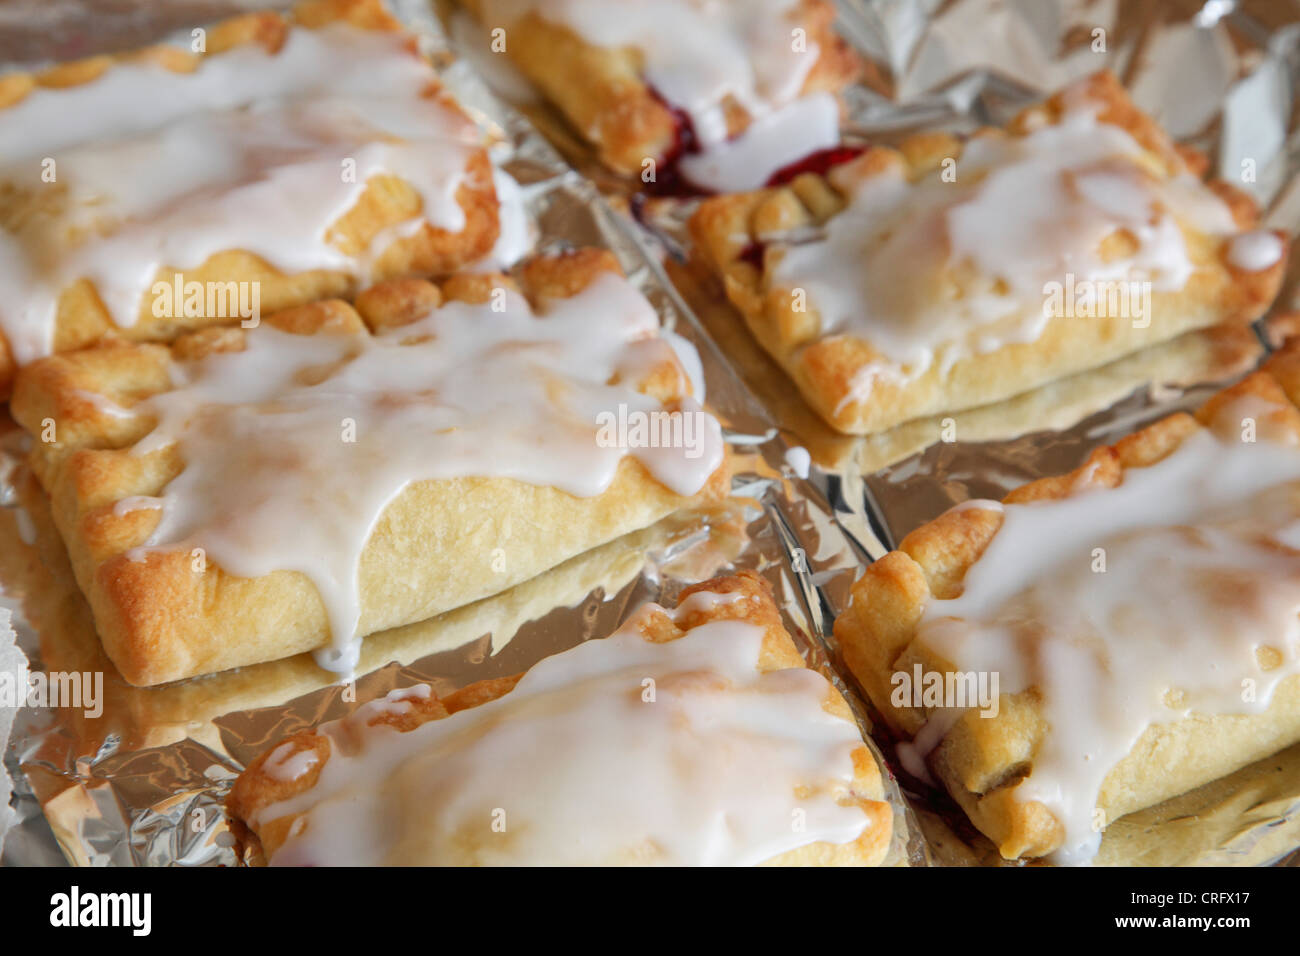 sugar coated flaky pastry filled with marmalade - Stock Image